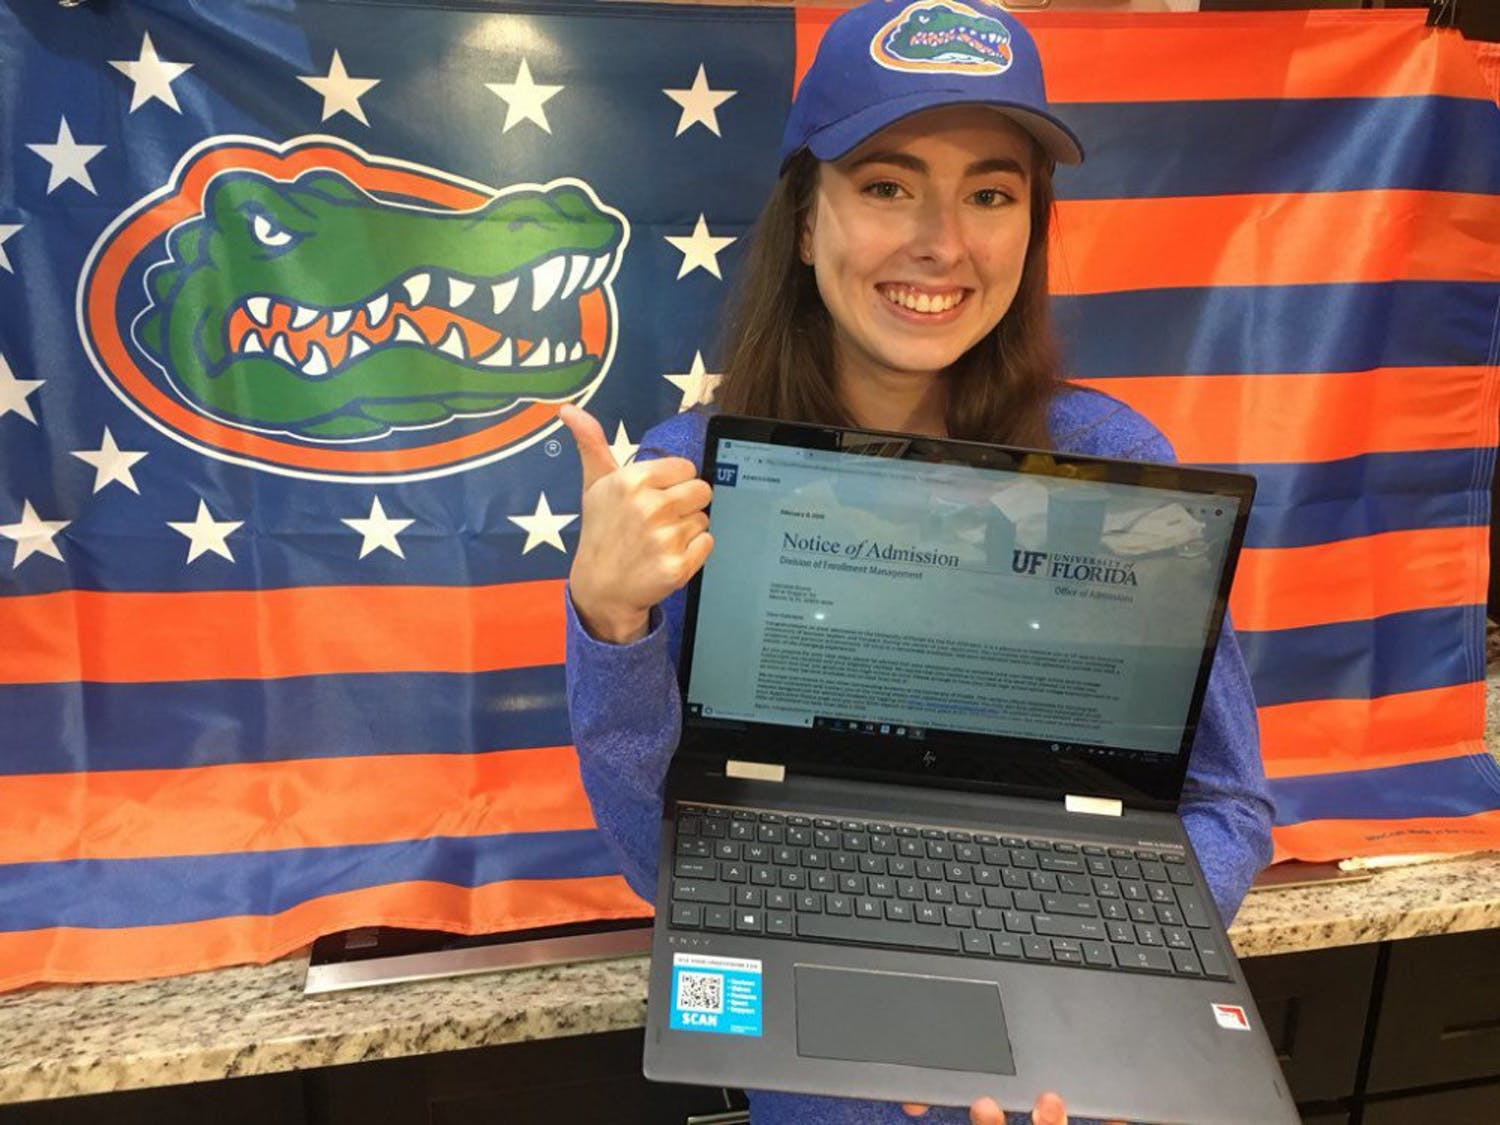 Gabrielle Russo, 17, was accepted into UF's class of 2023. Russo, who's a third generation Gator, applied as undecided but is interested in biomedical engineering.